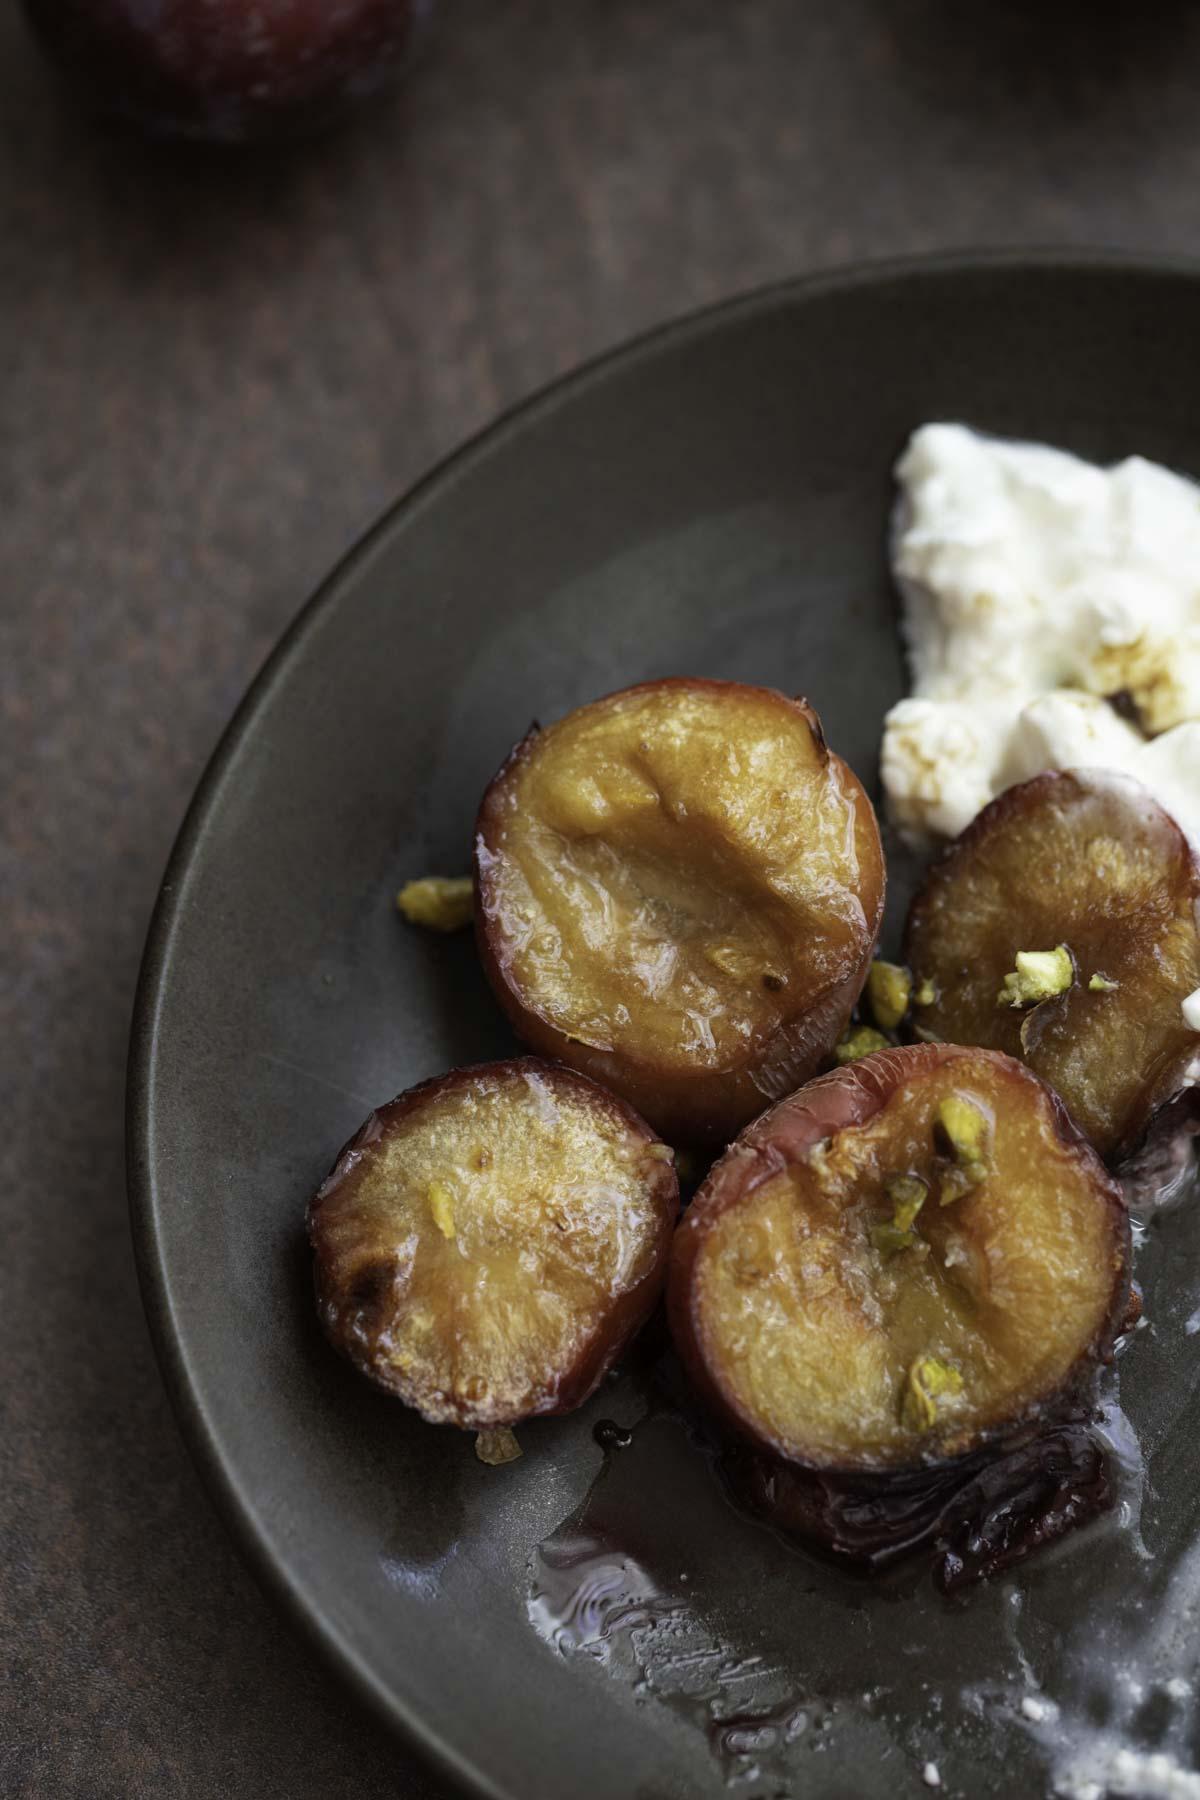 roasted plums with a drizzle of honey and garnished with pistachios